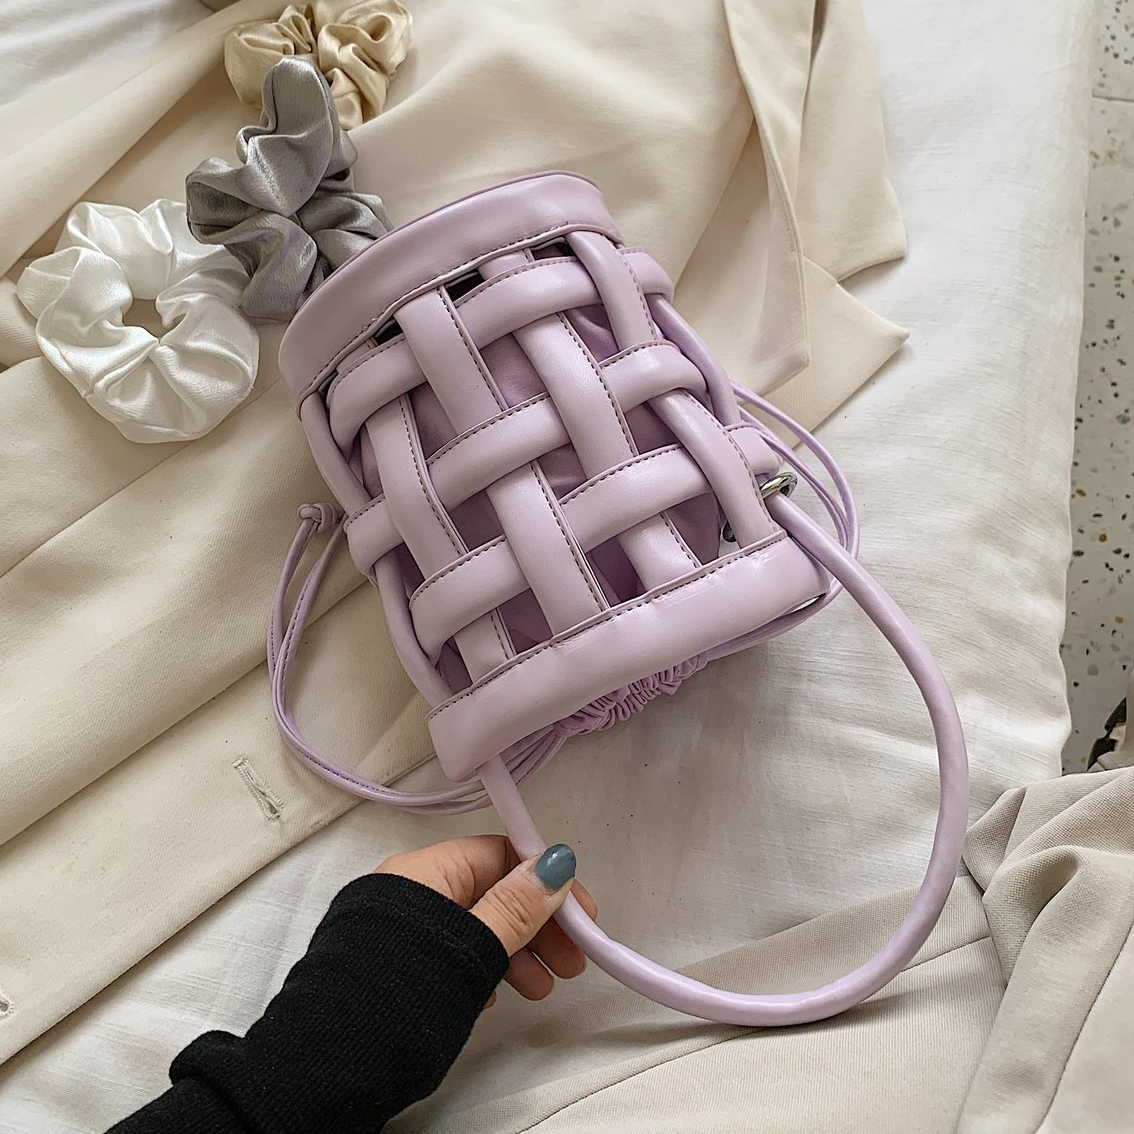 Cutout Waffle Small PU Leather Bucket Bags Crossbody Bags For Women 2020 Solid Color Shoulder Handbags Female Cross Body Bag